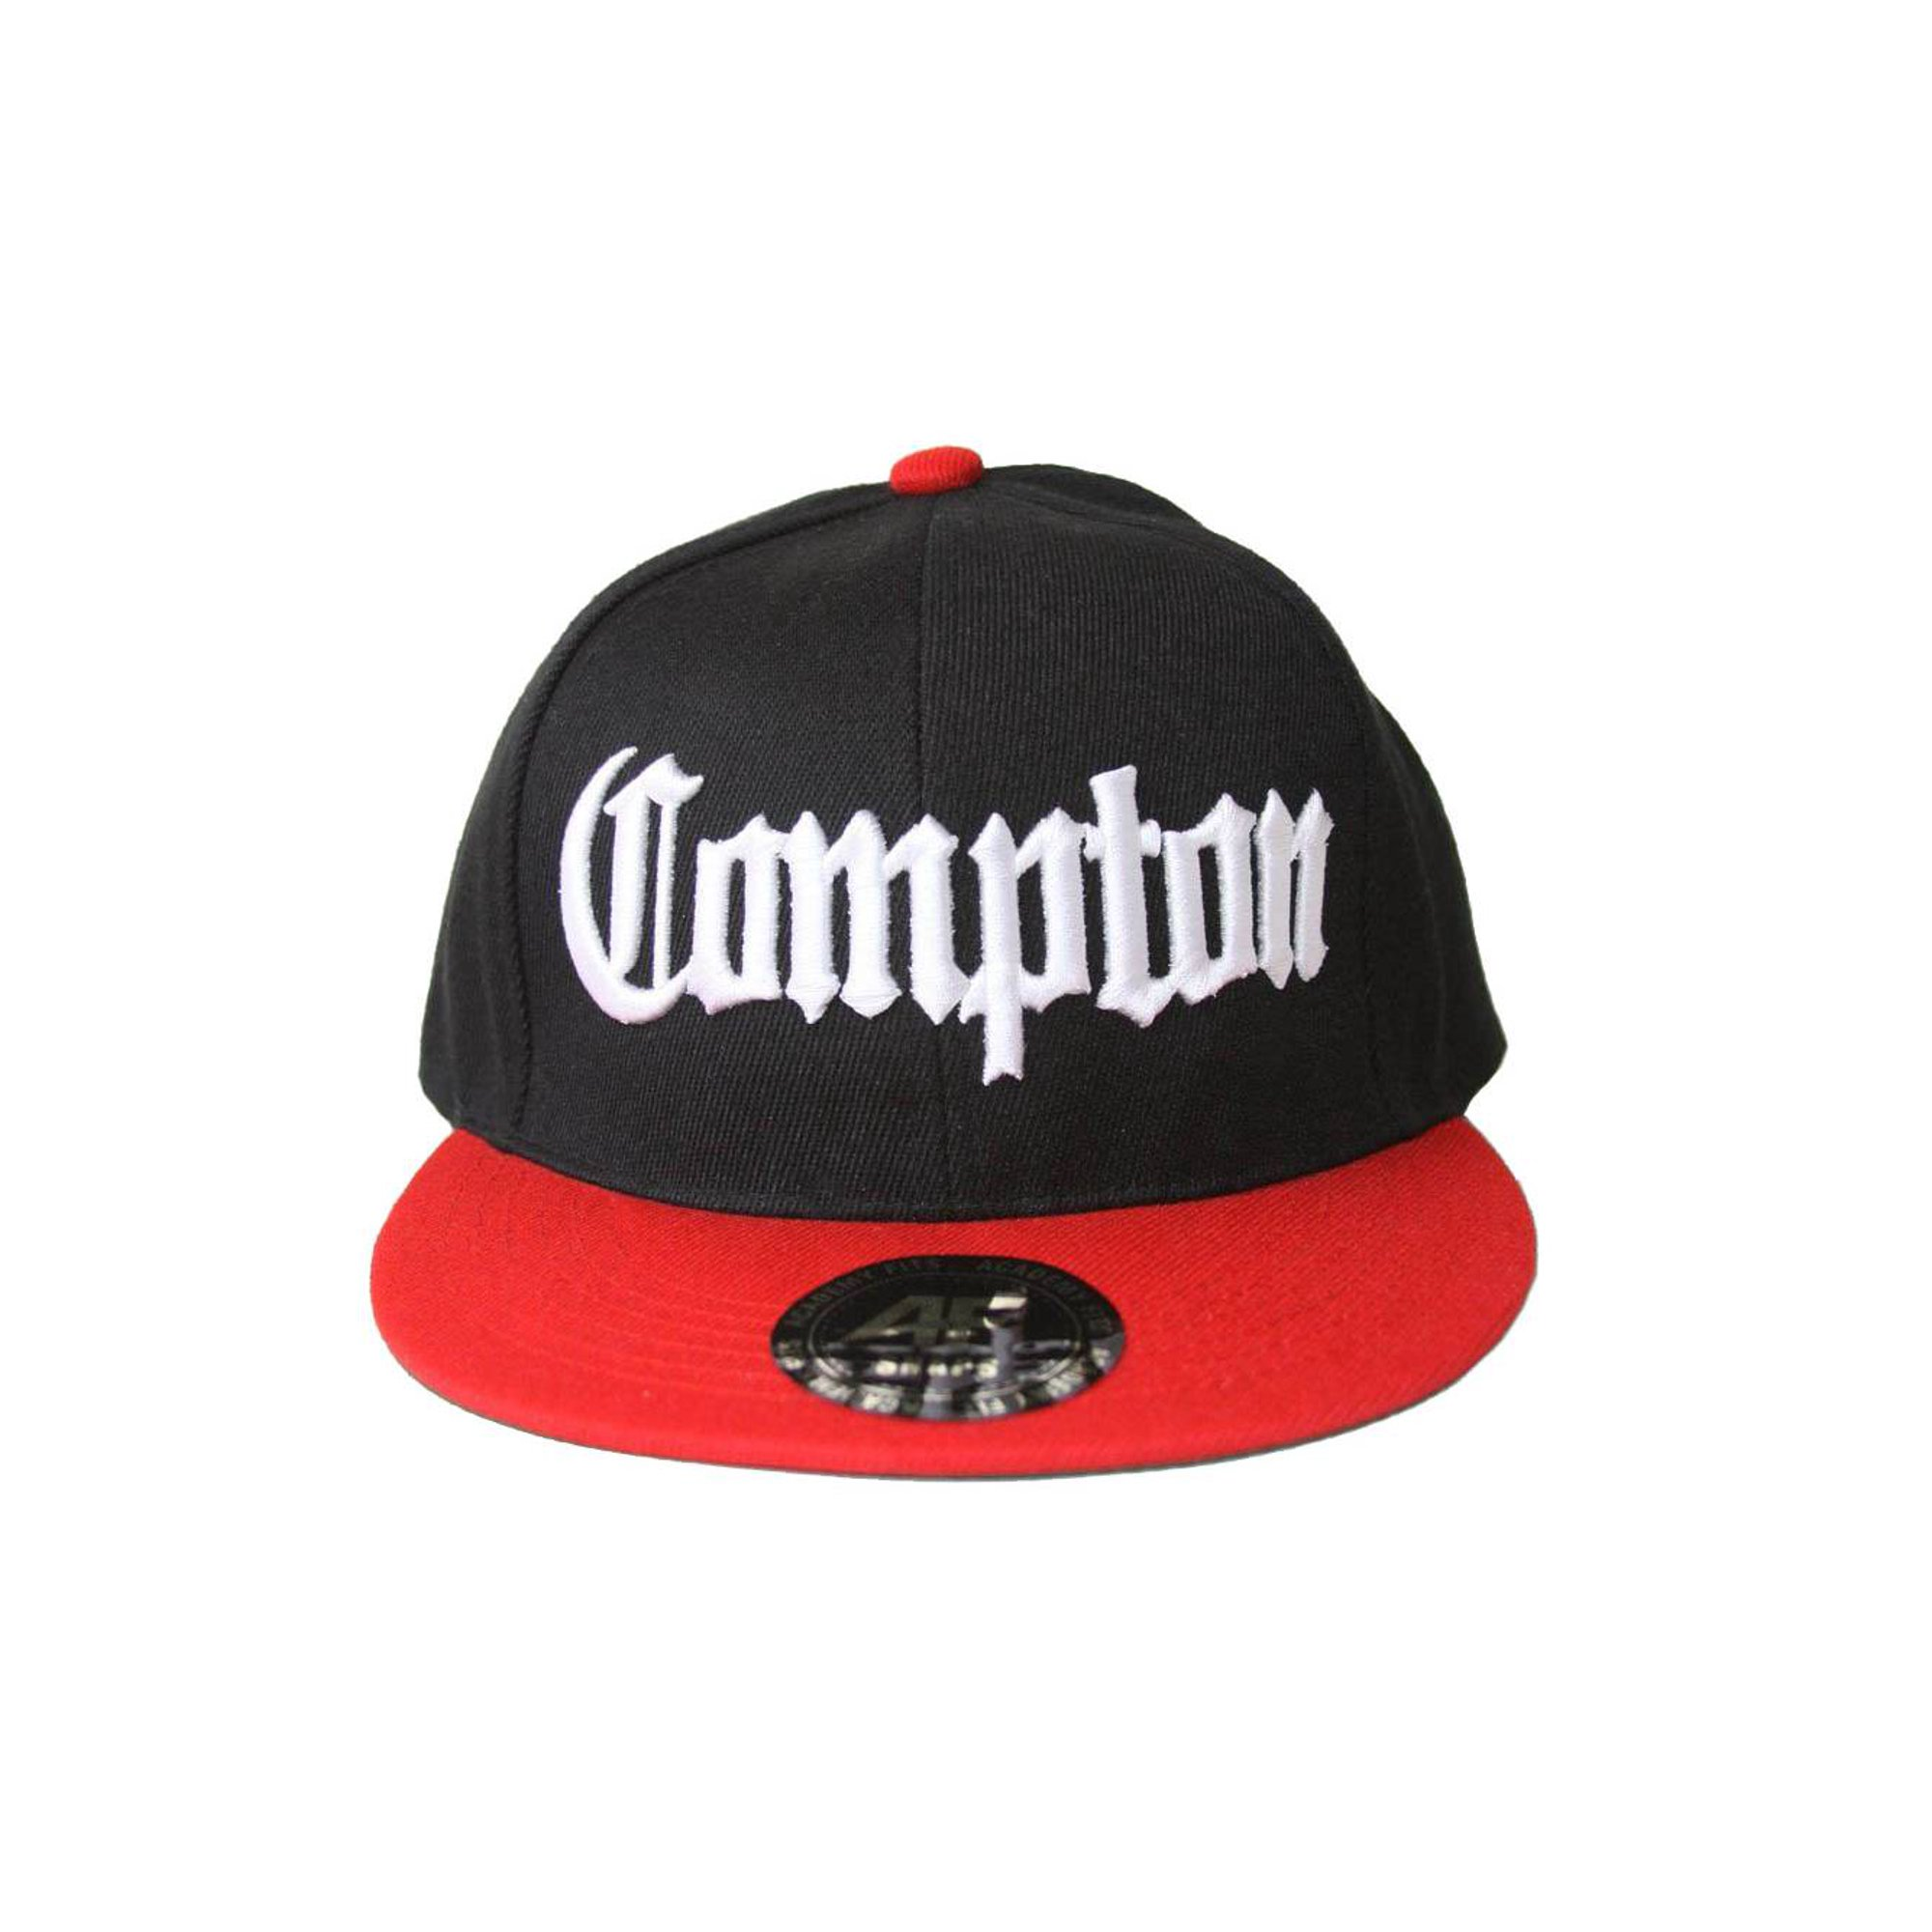 b4cd7ae5f68c2 Academy Compton Snapback Hat Black   Red